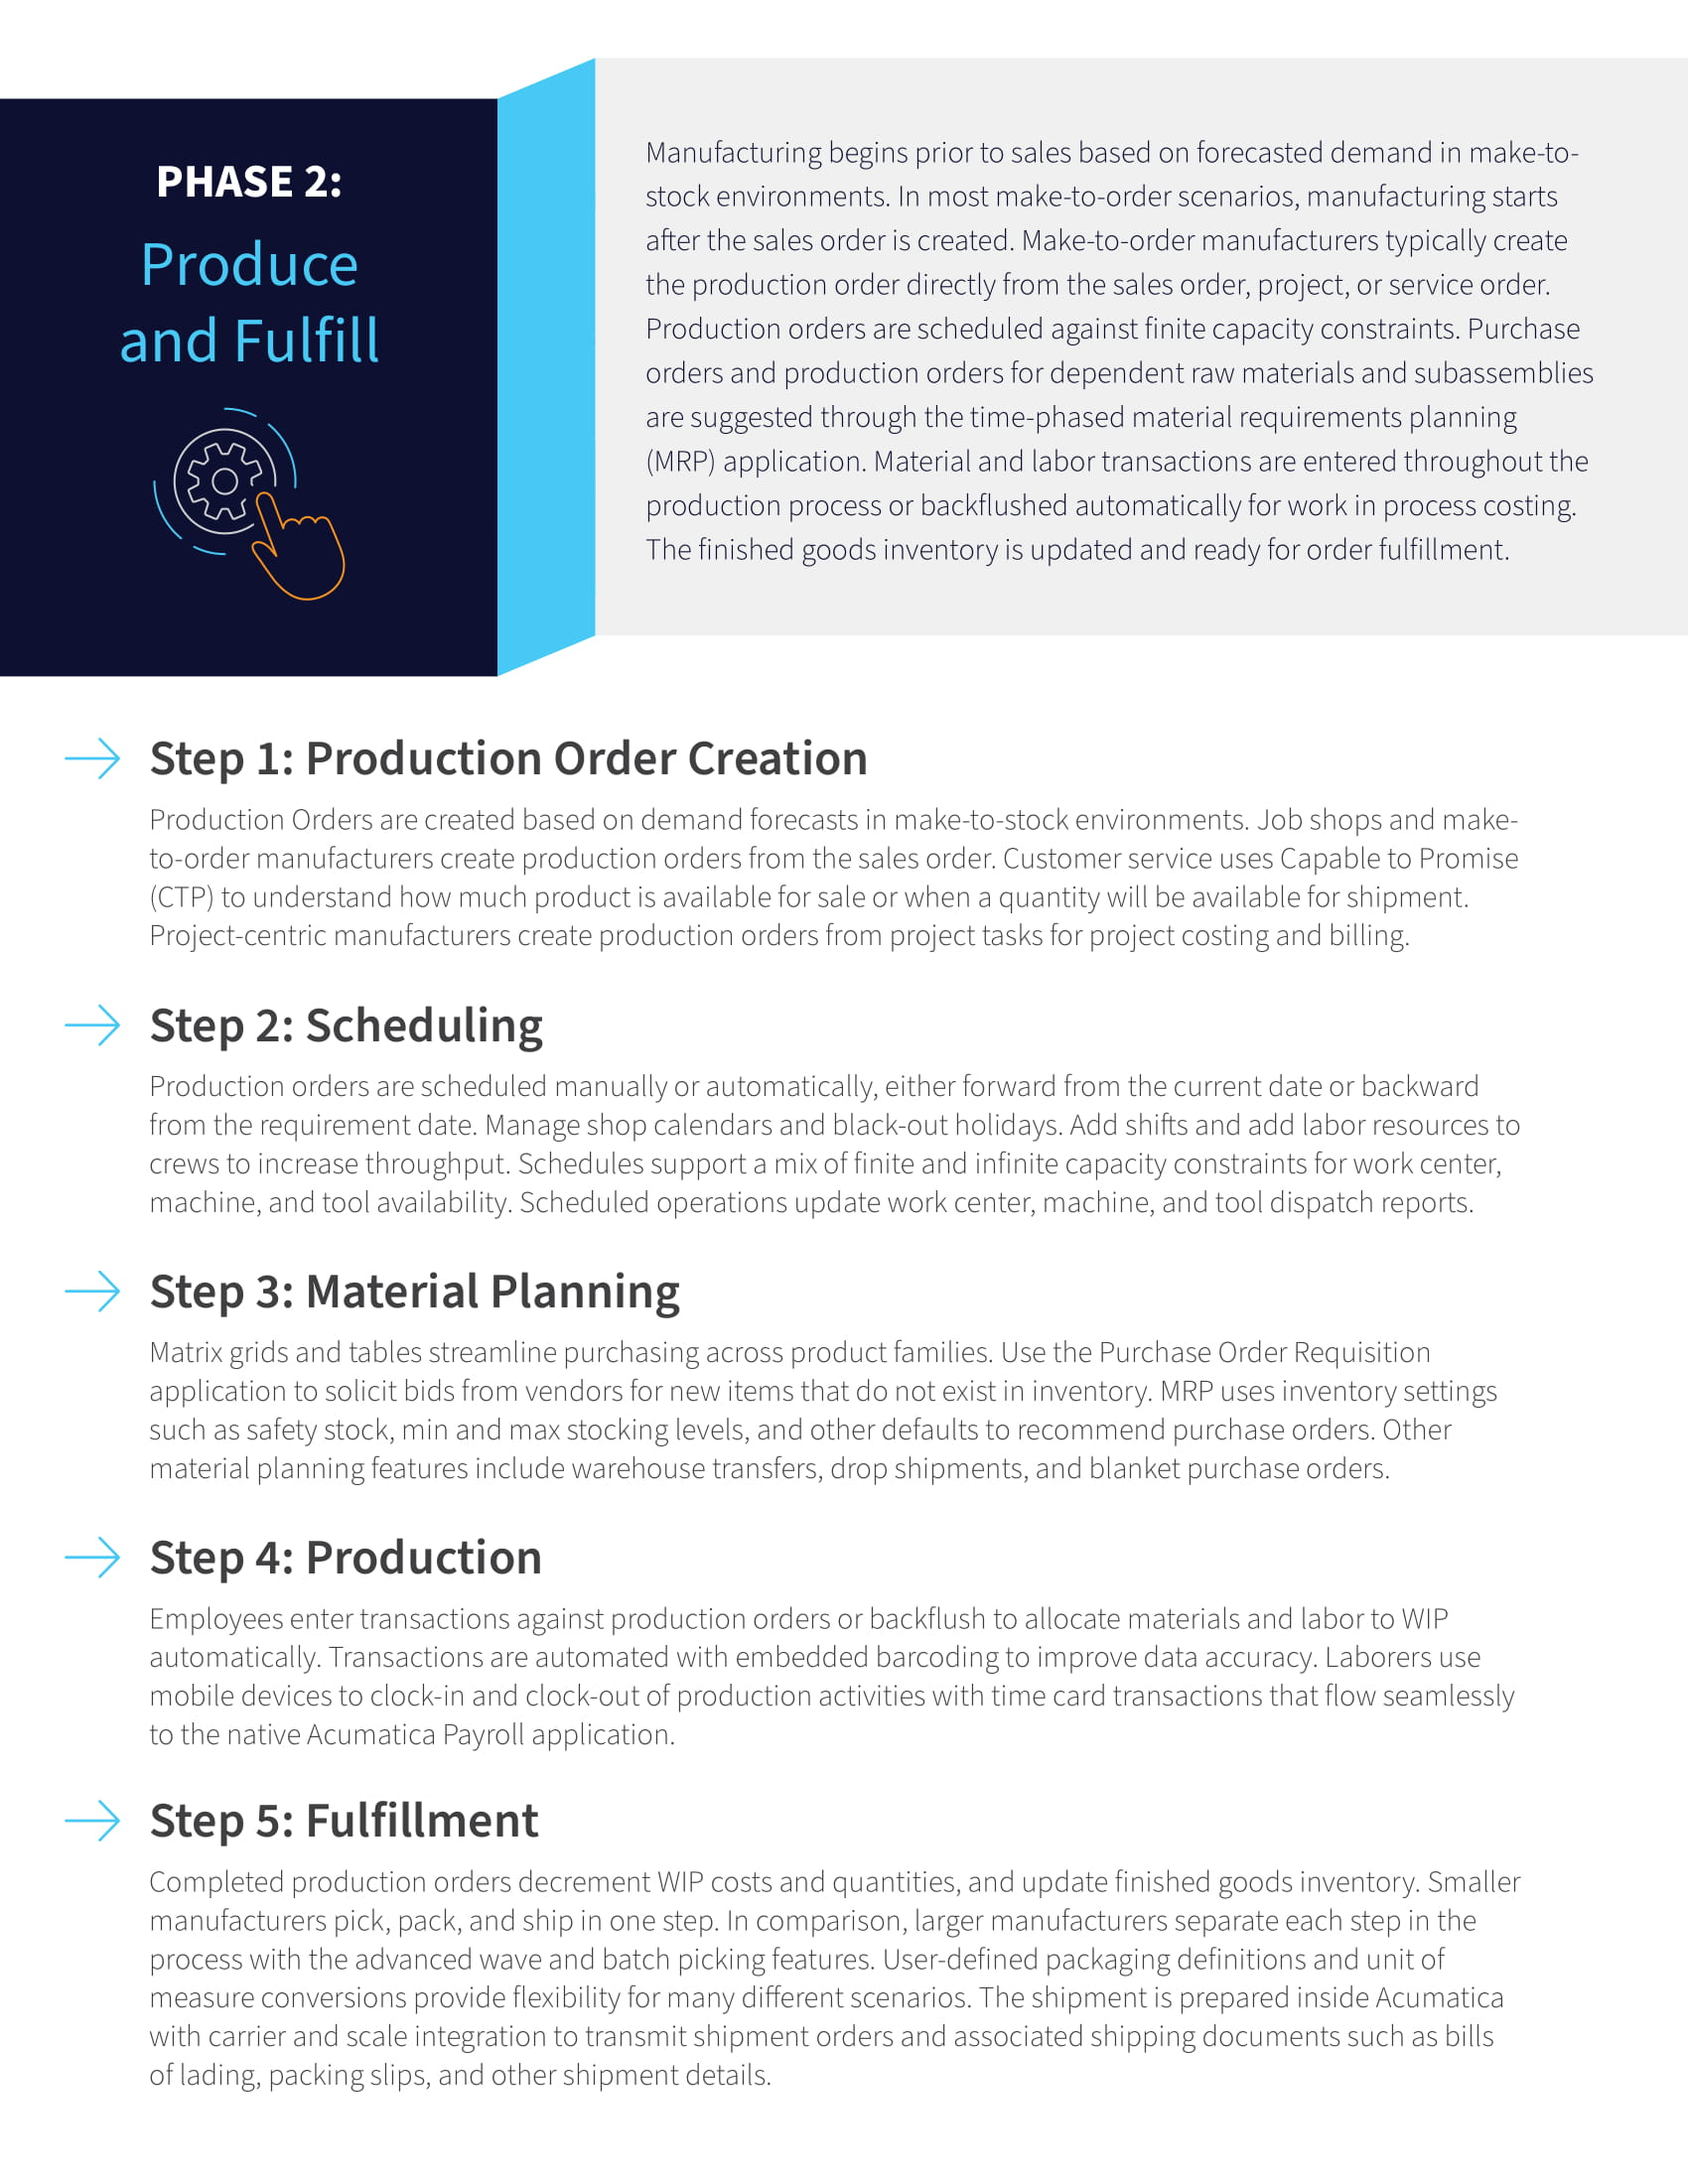 Improve Manufacturing Cash Flow with a Flexible and Automated ERP Application, page 2